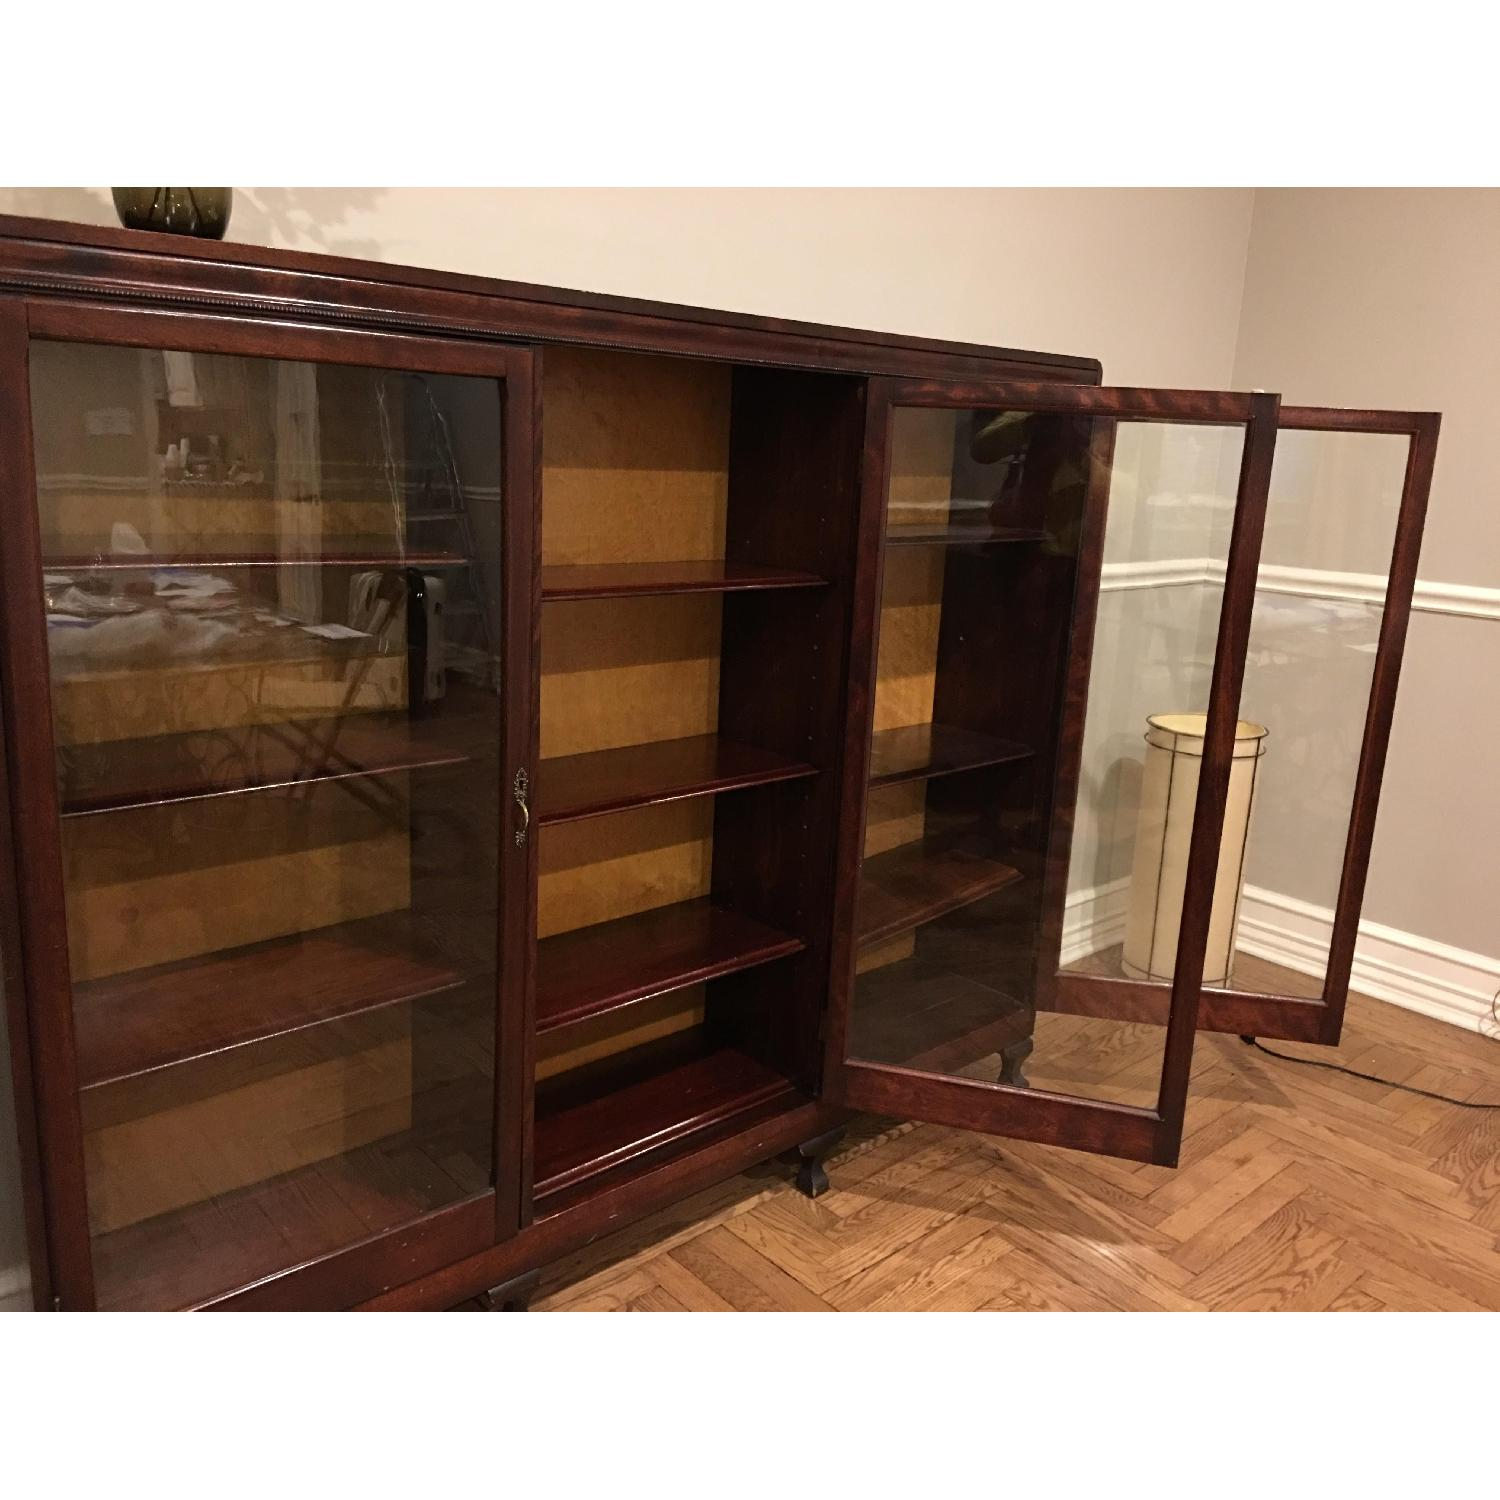 Antique Mahogany Glass-Front Bookcase/Cabinet-0